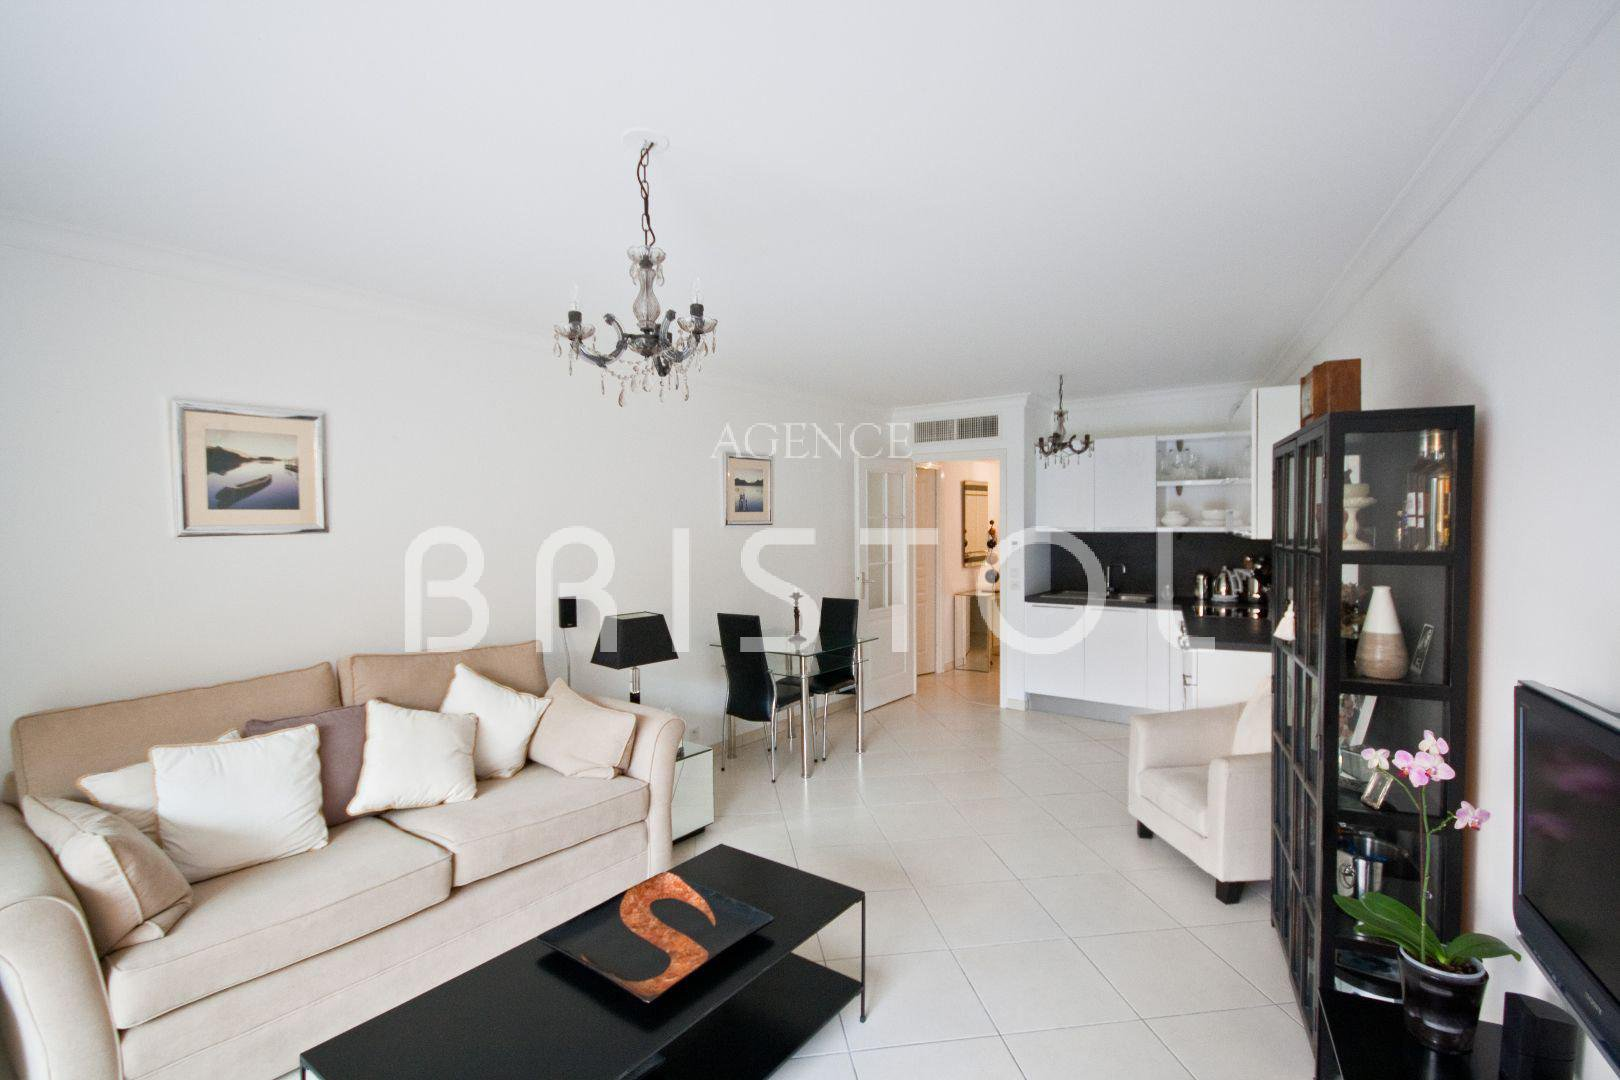 Beaulieu sur mer lovely one bedroom apartment